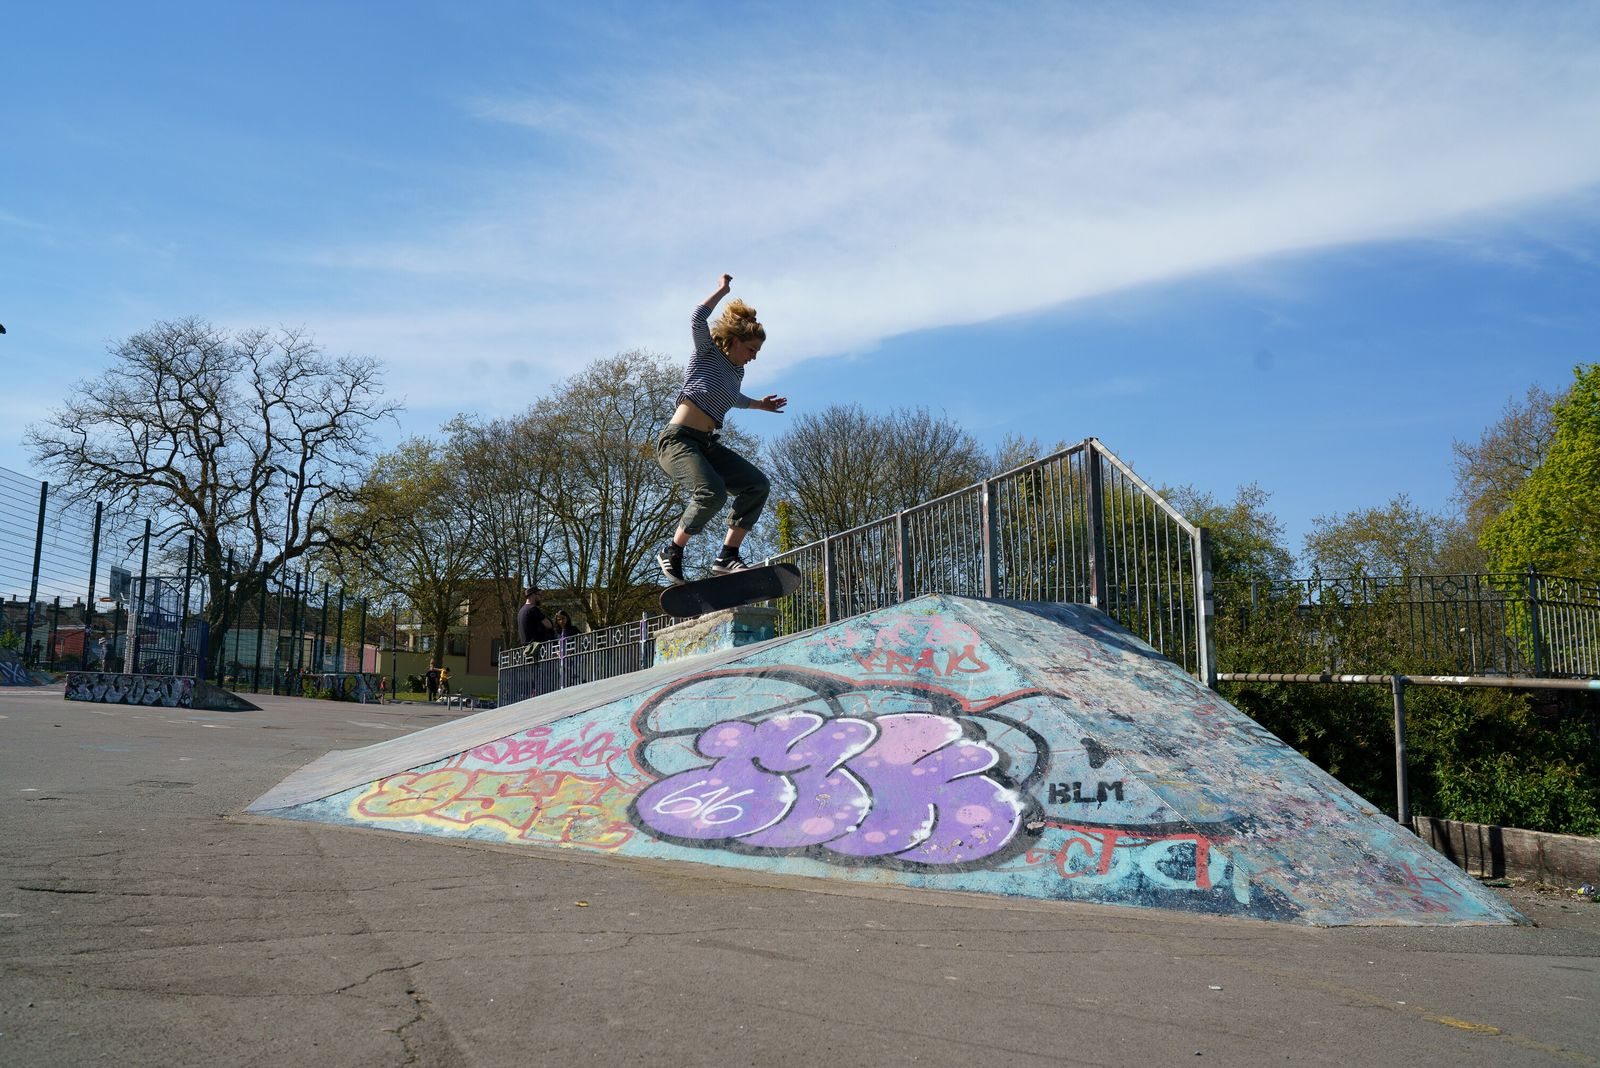 Dean Lane is a concrete lover's dream, with ramps and banks, curved bowl corners and a huge pump ...